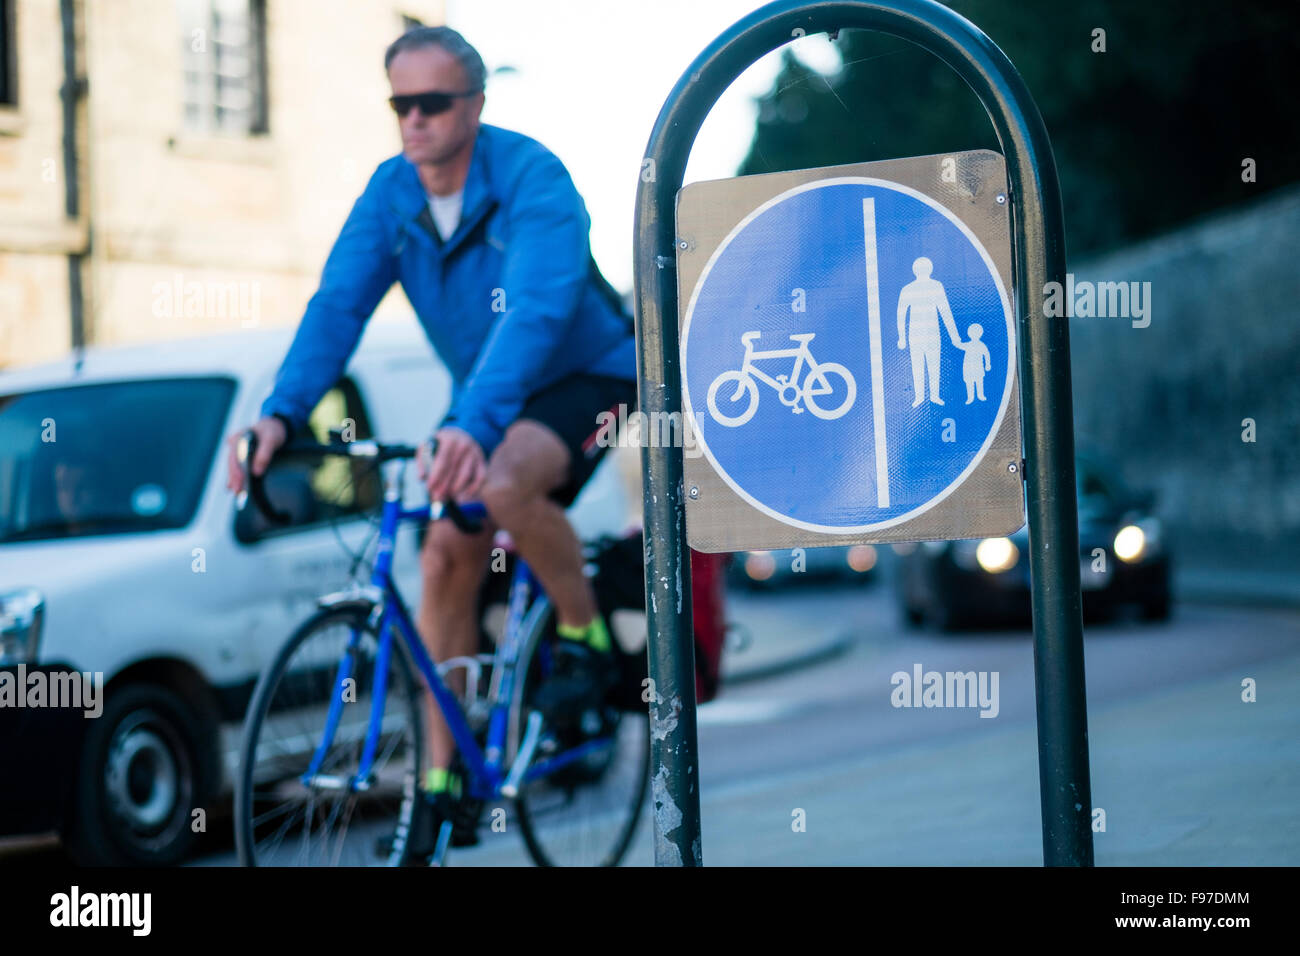 A man cycling post a sign for a dedicated cycle and pedestrian lane, Cirencester, Gloucestershire, England, UK - Stock Image